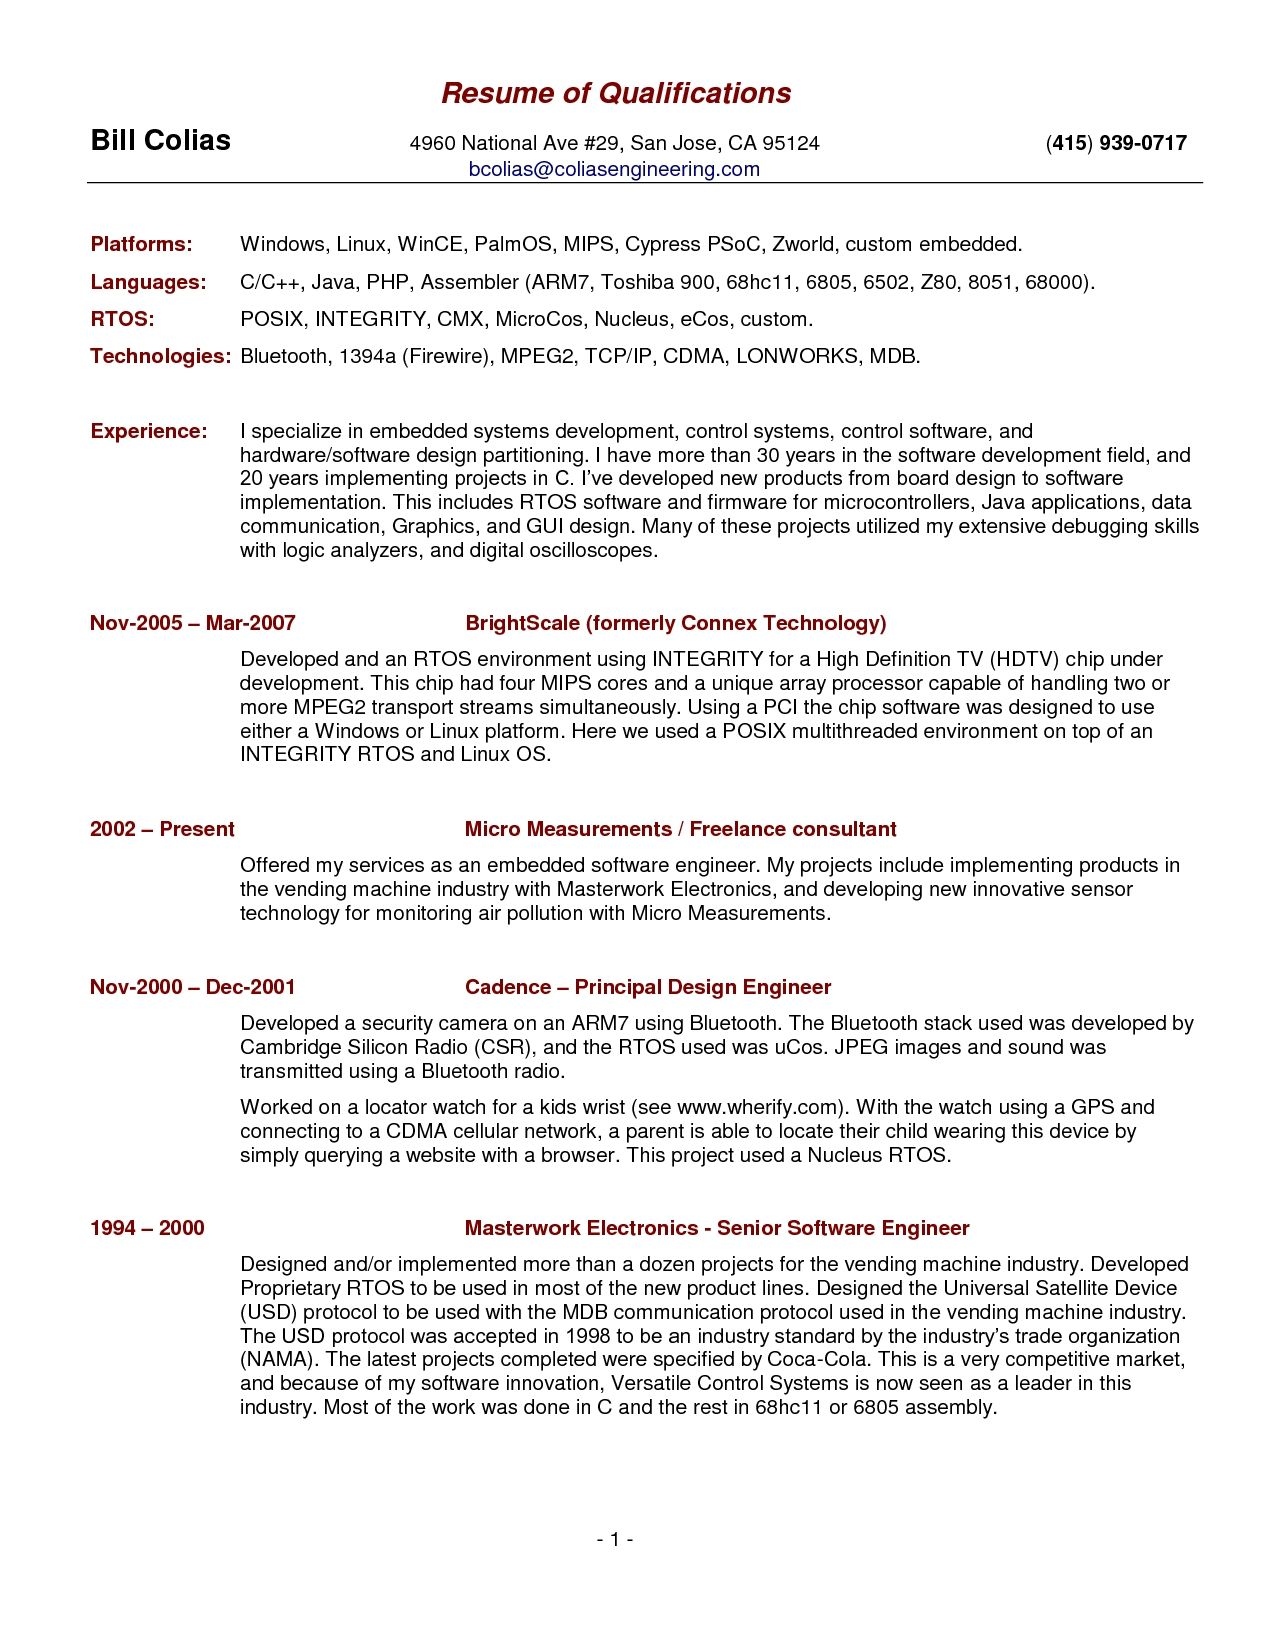 Job Qualifications Sample Skylogic Skills Resume Examples Qualification Key  It Skills For Resume